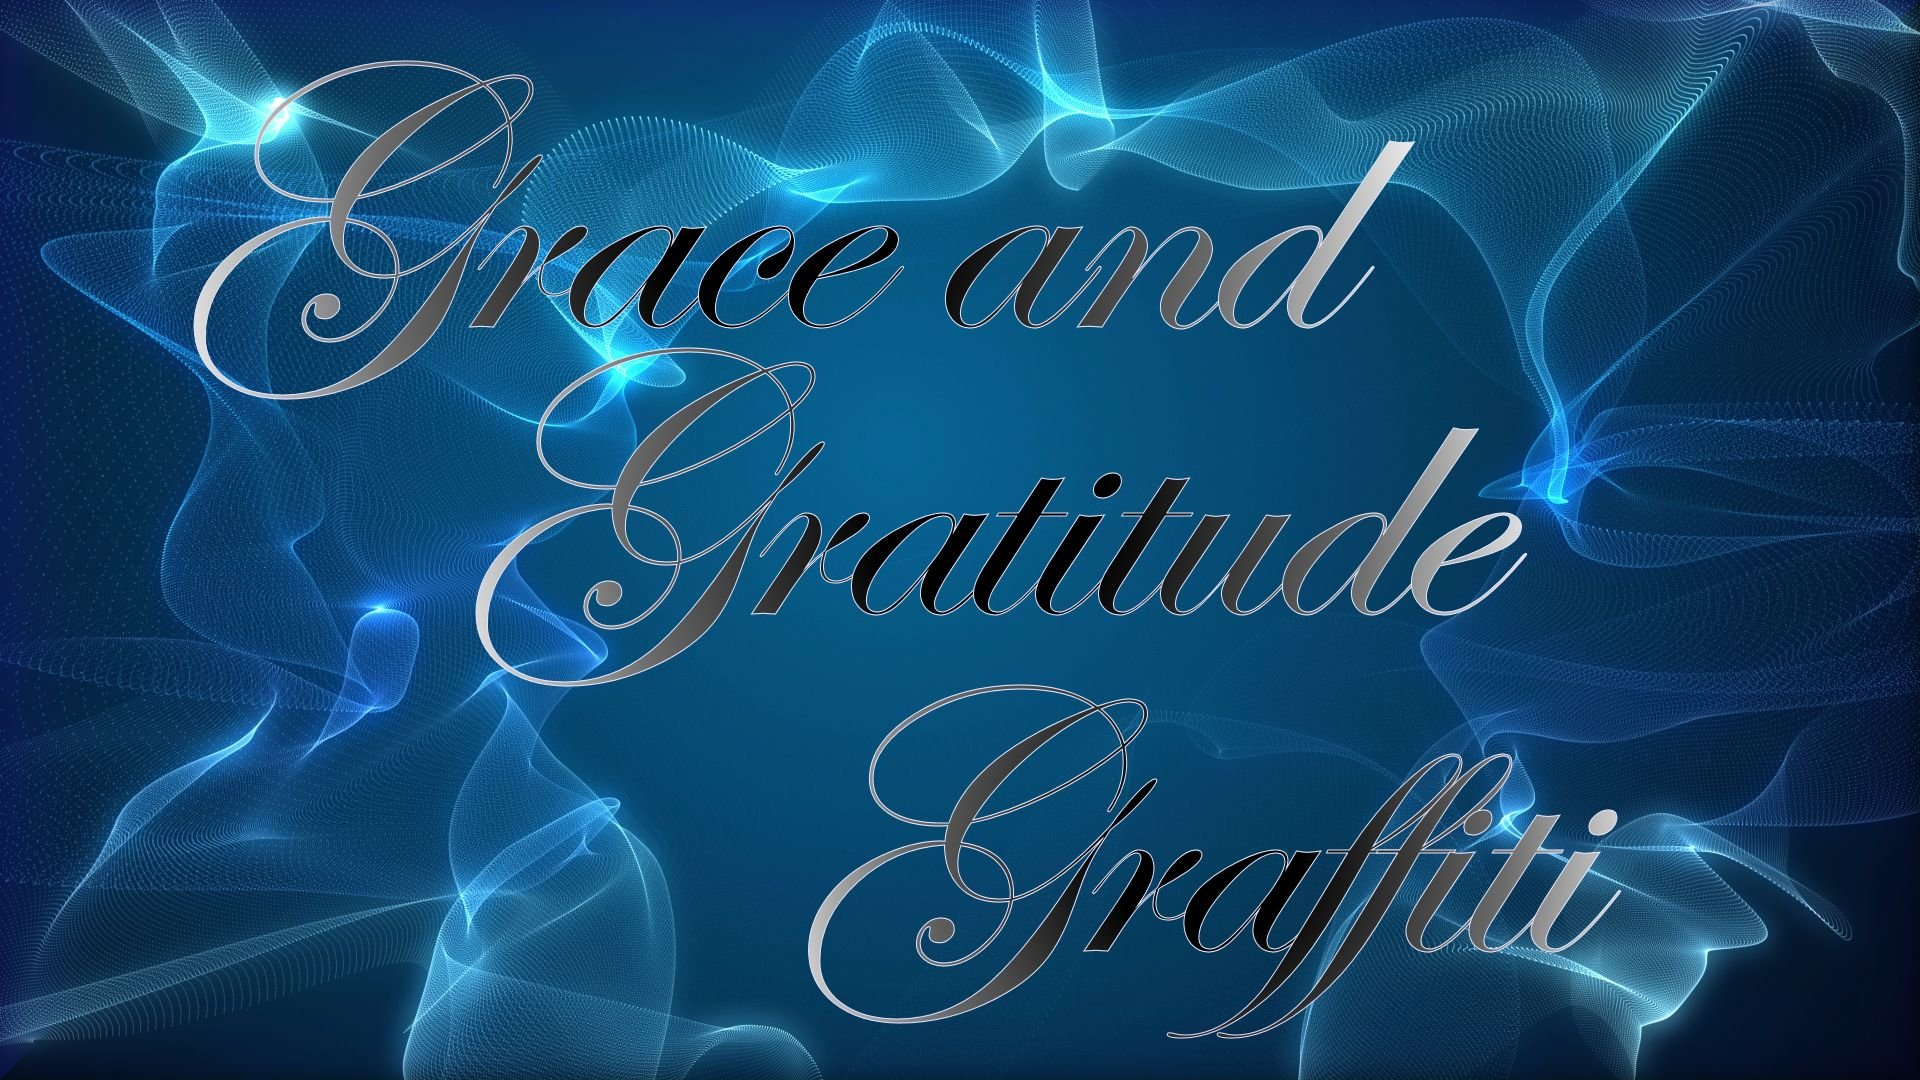 Grace and Gratitude Graffiti